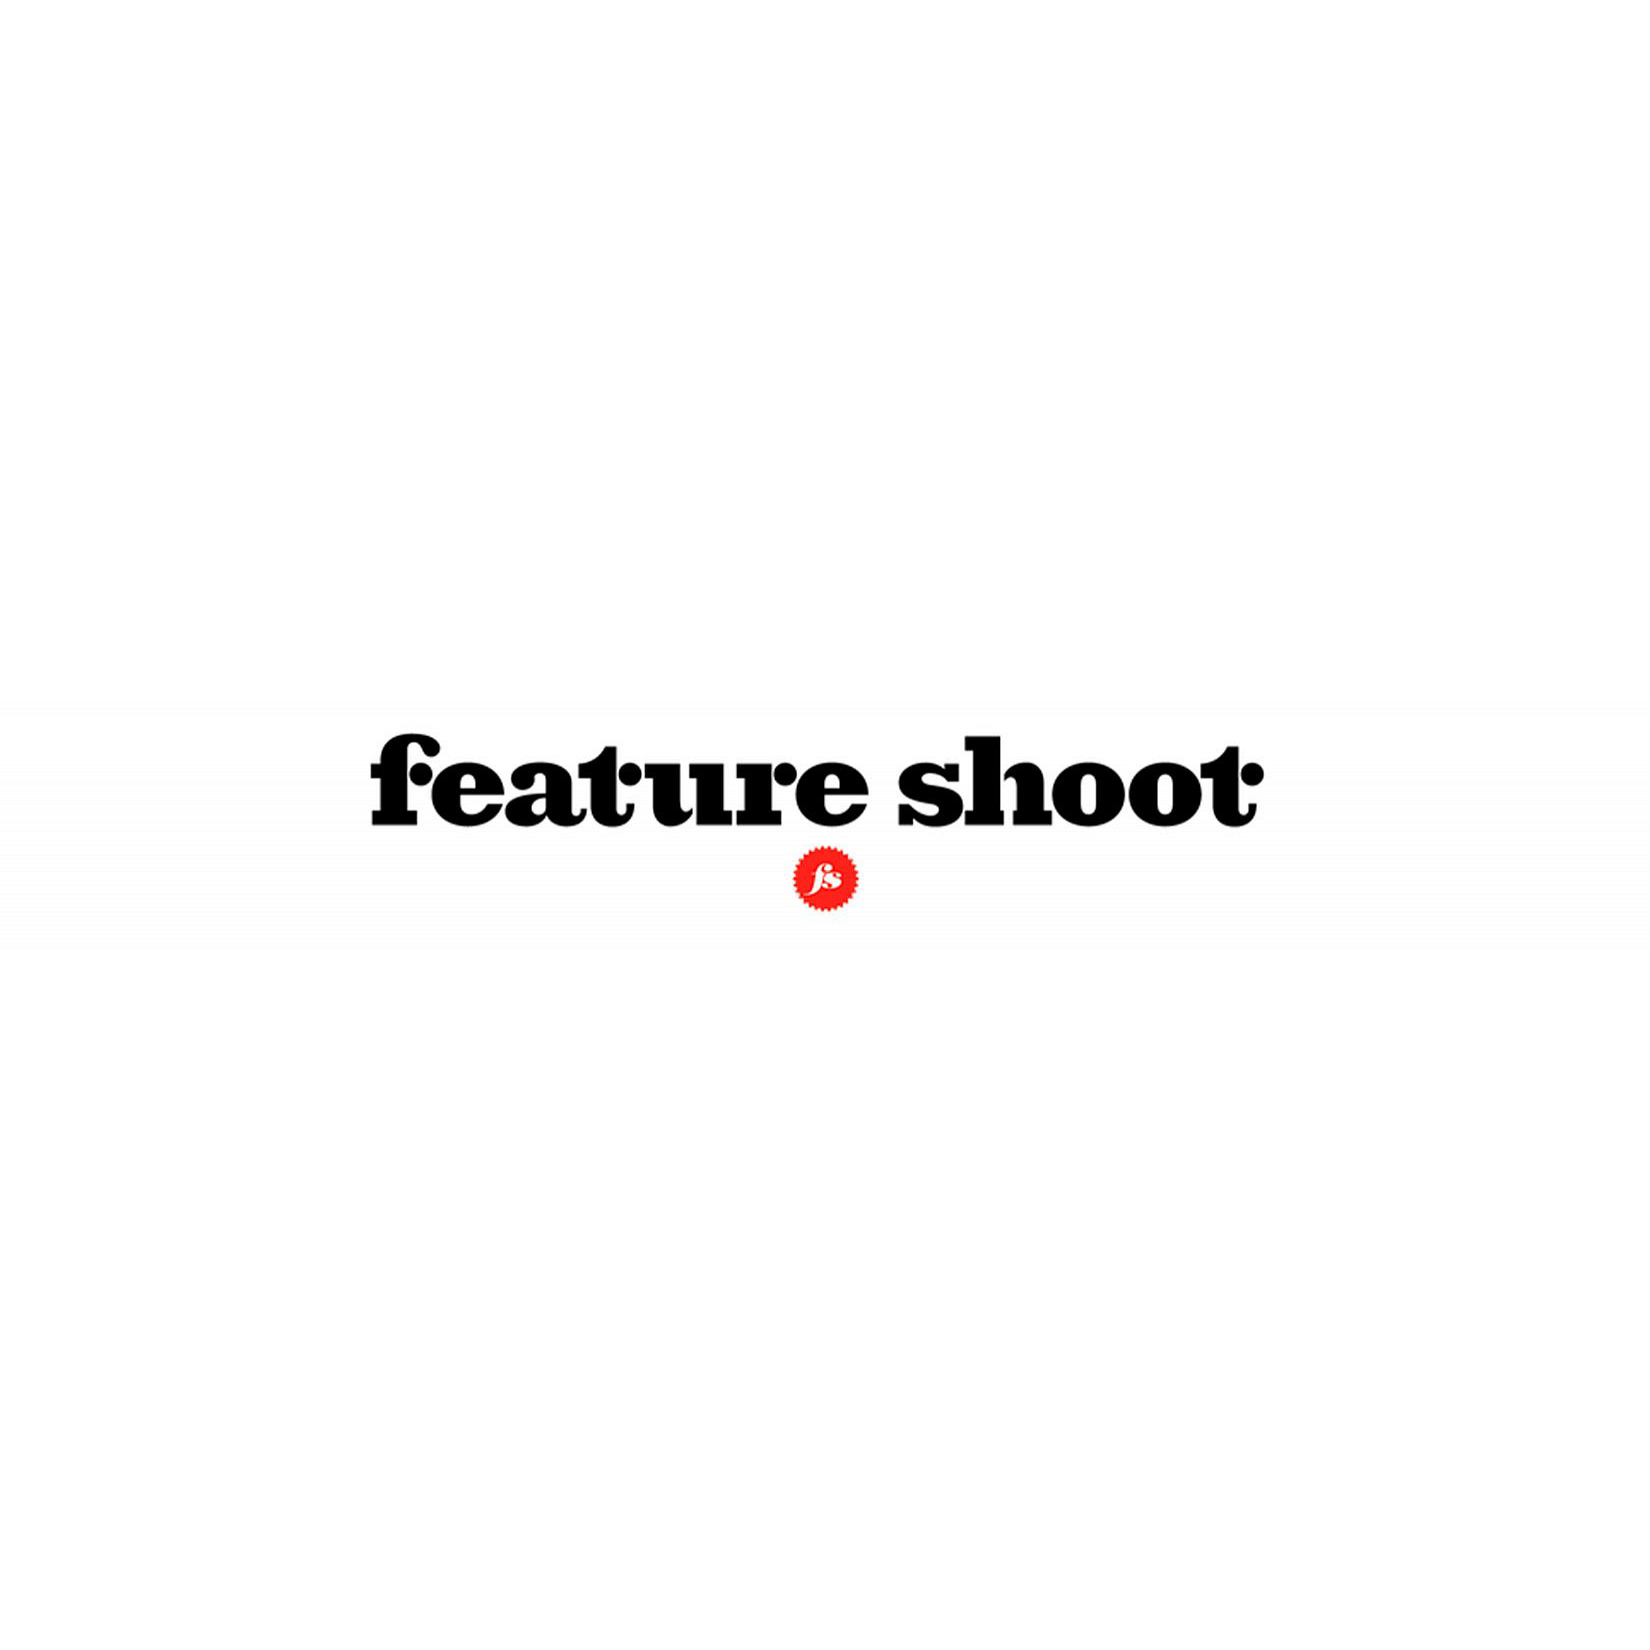 Sunday School was featured in a Q&A photography interview courtesy of the online magazine, Featureshoot, which highlights the birth of our creative establishment.